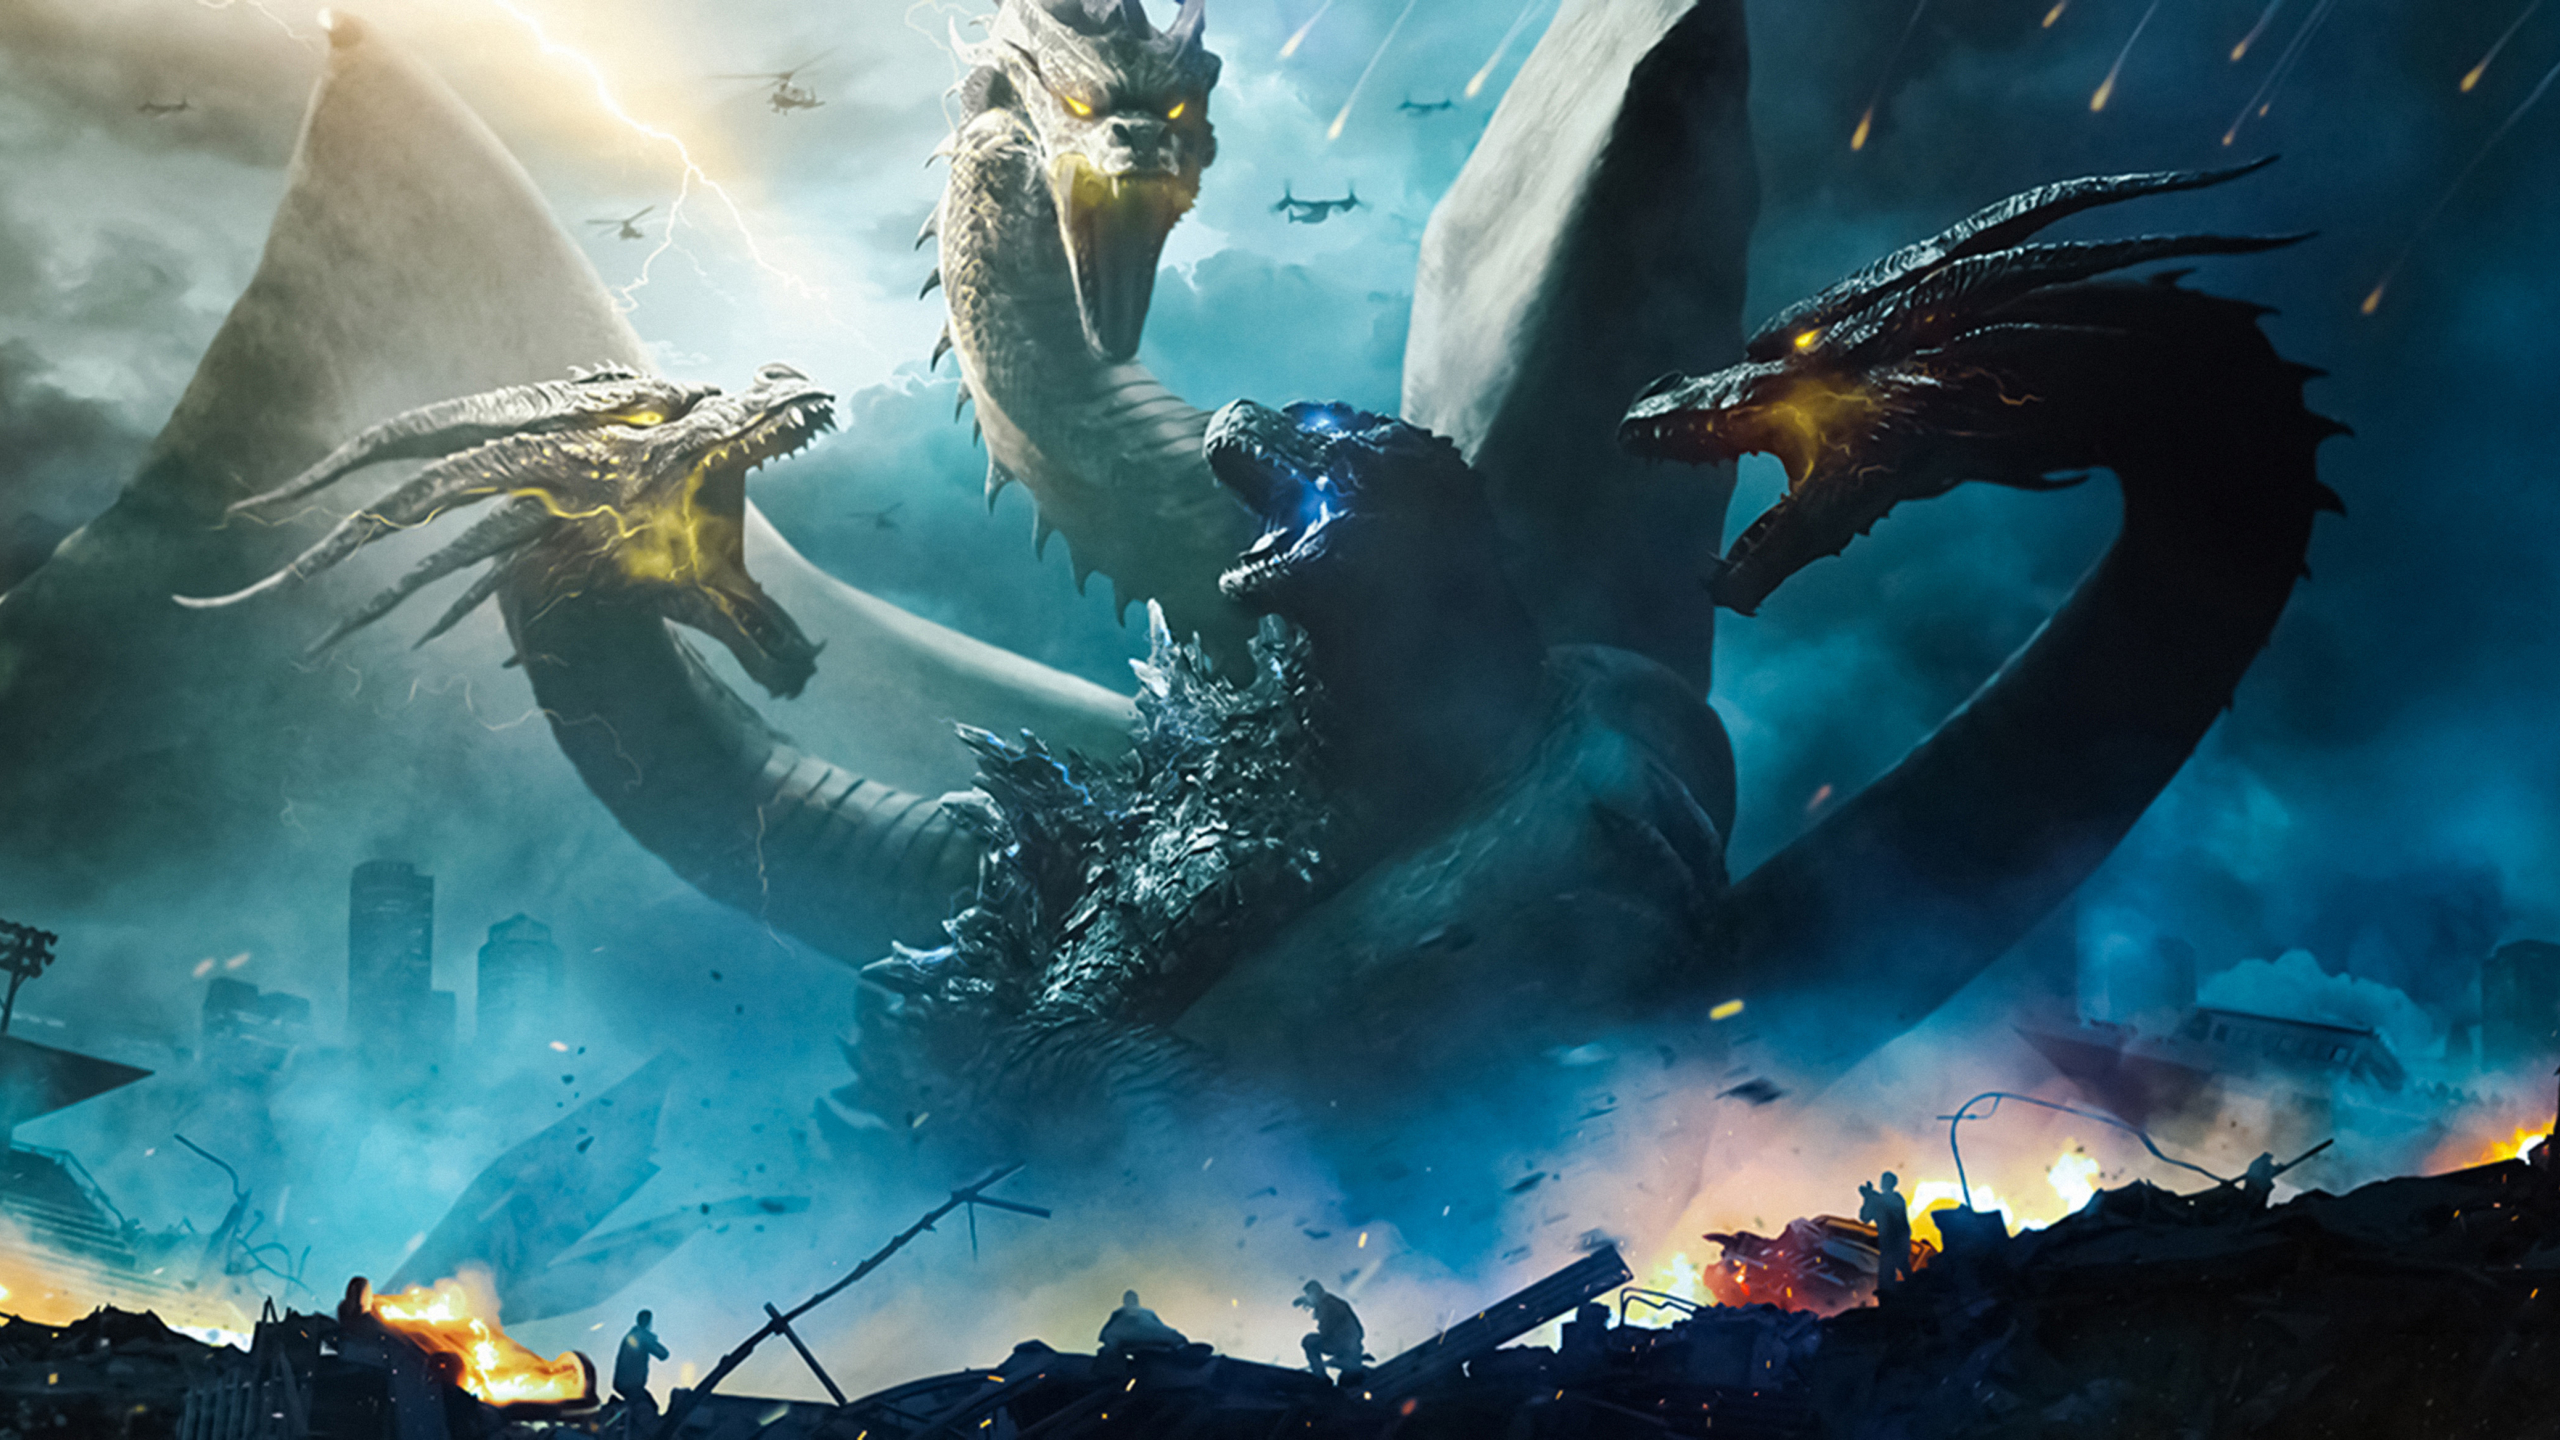 2560x1440 Godzilla King Of The Monsters 4k 8k 1440p